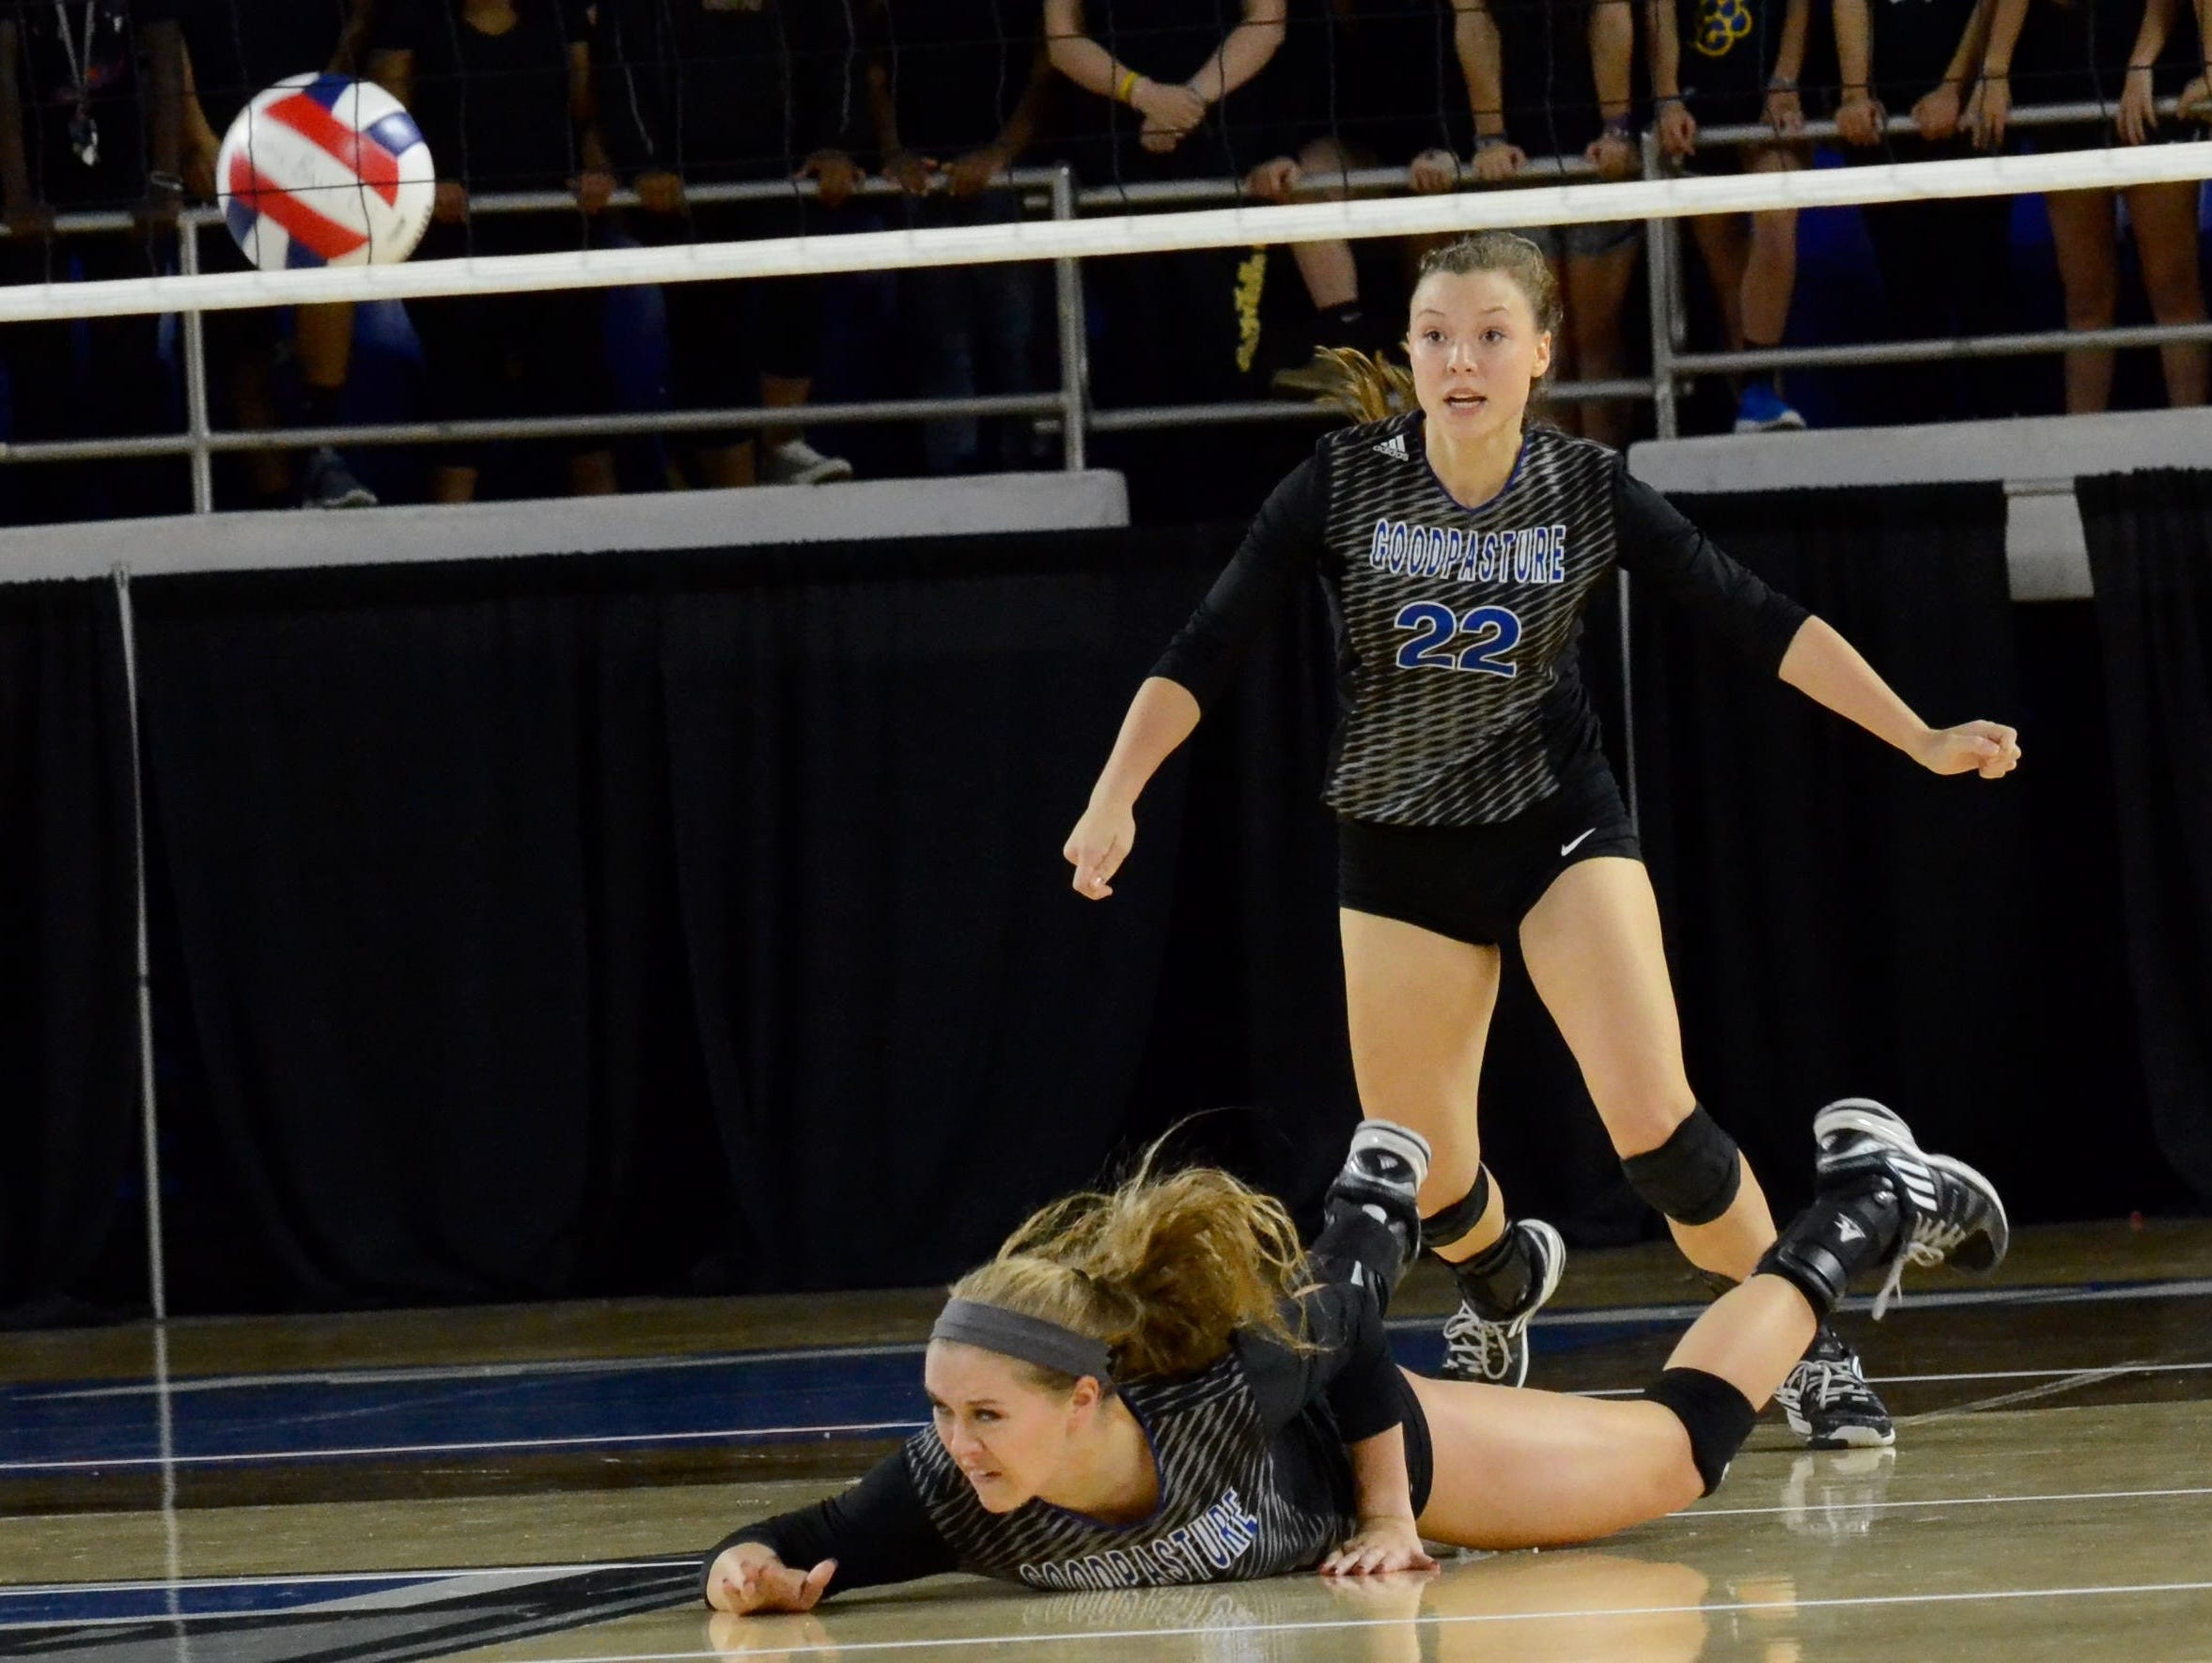 Goodpasture's Jennifer Rochelle dives to dig out a South Greene shot as Tatum Fox (22) looks on during Friday's Class A championship at MTSU.